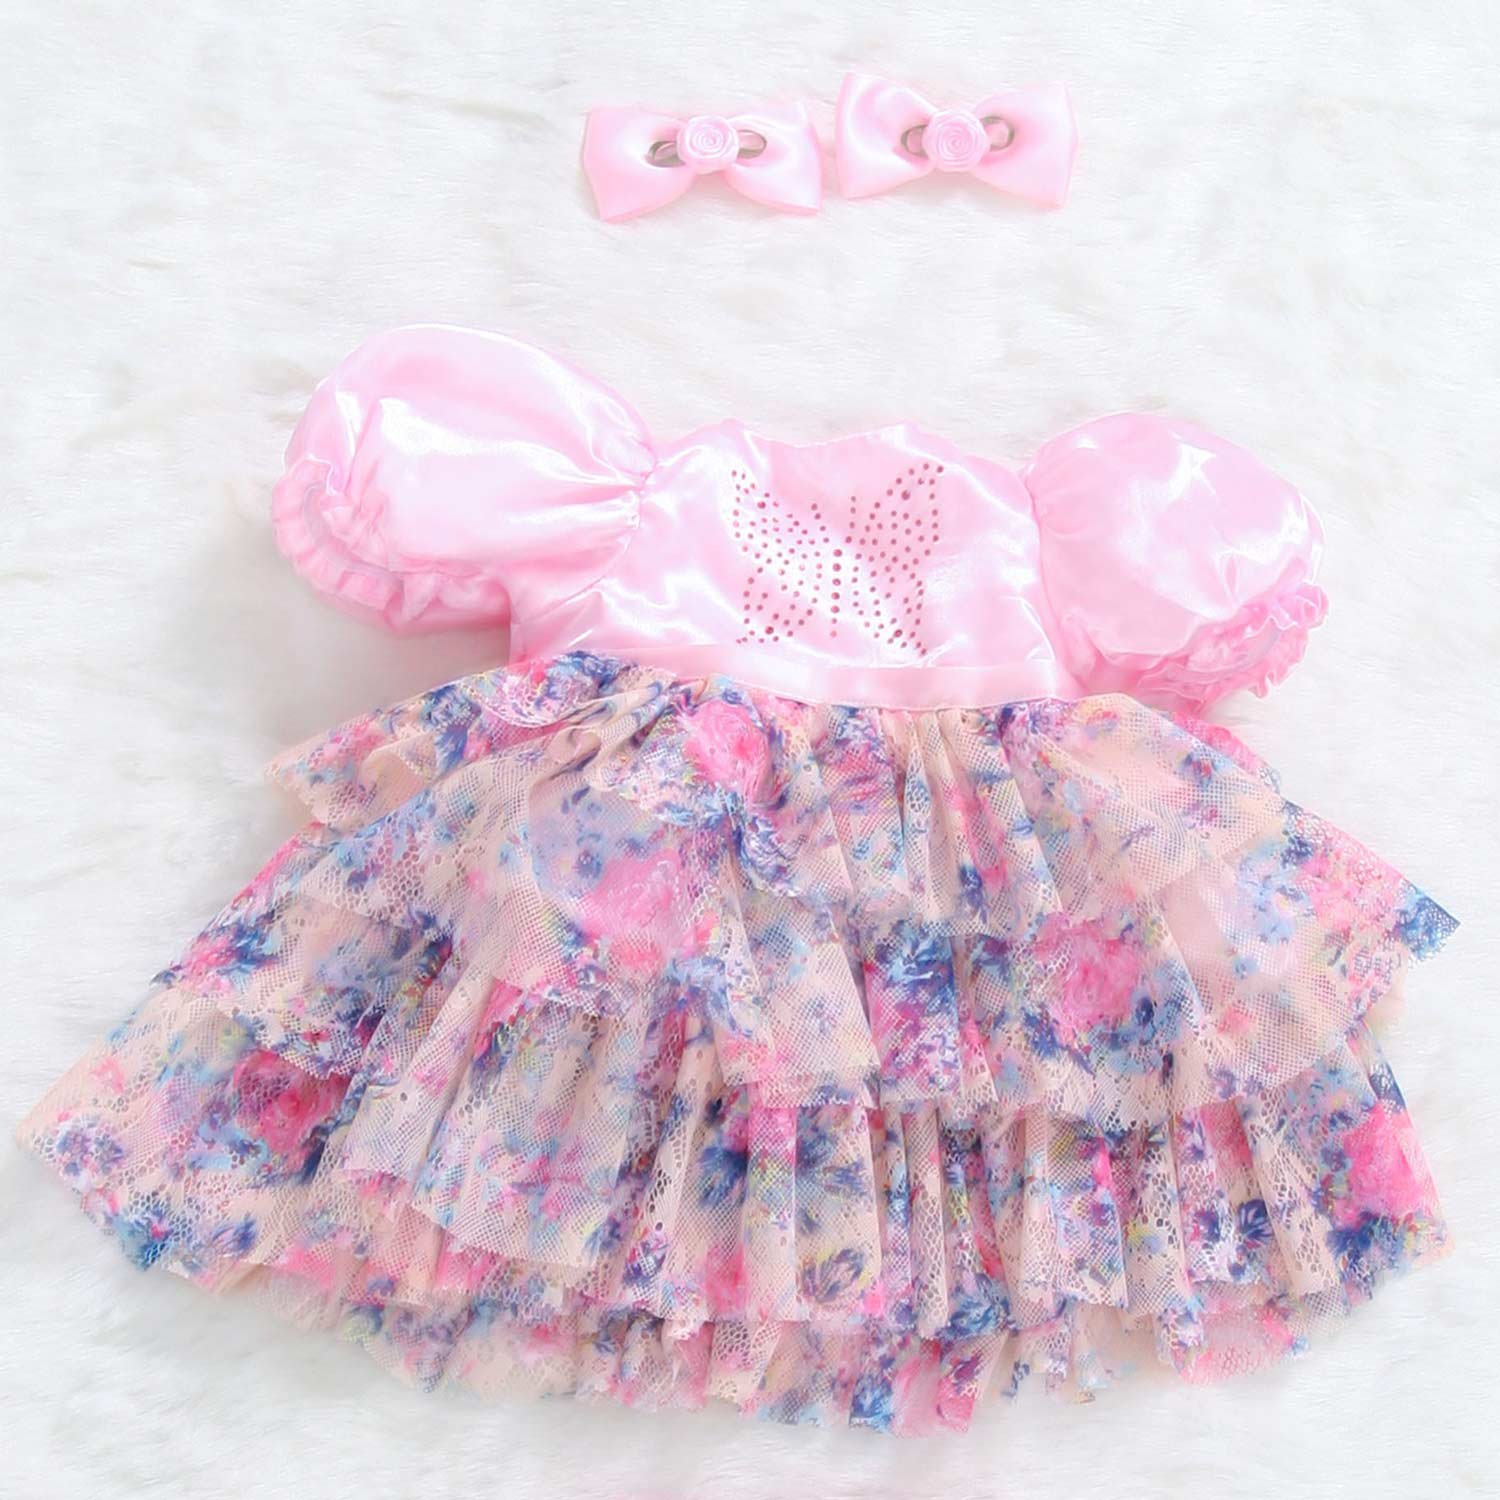 Pursue Baby 24 Inch Reborn Toddler Dolls Dancing Butterfly Outfit   B07DFKFMTS